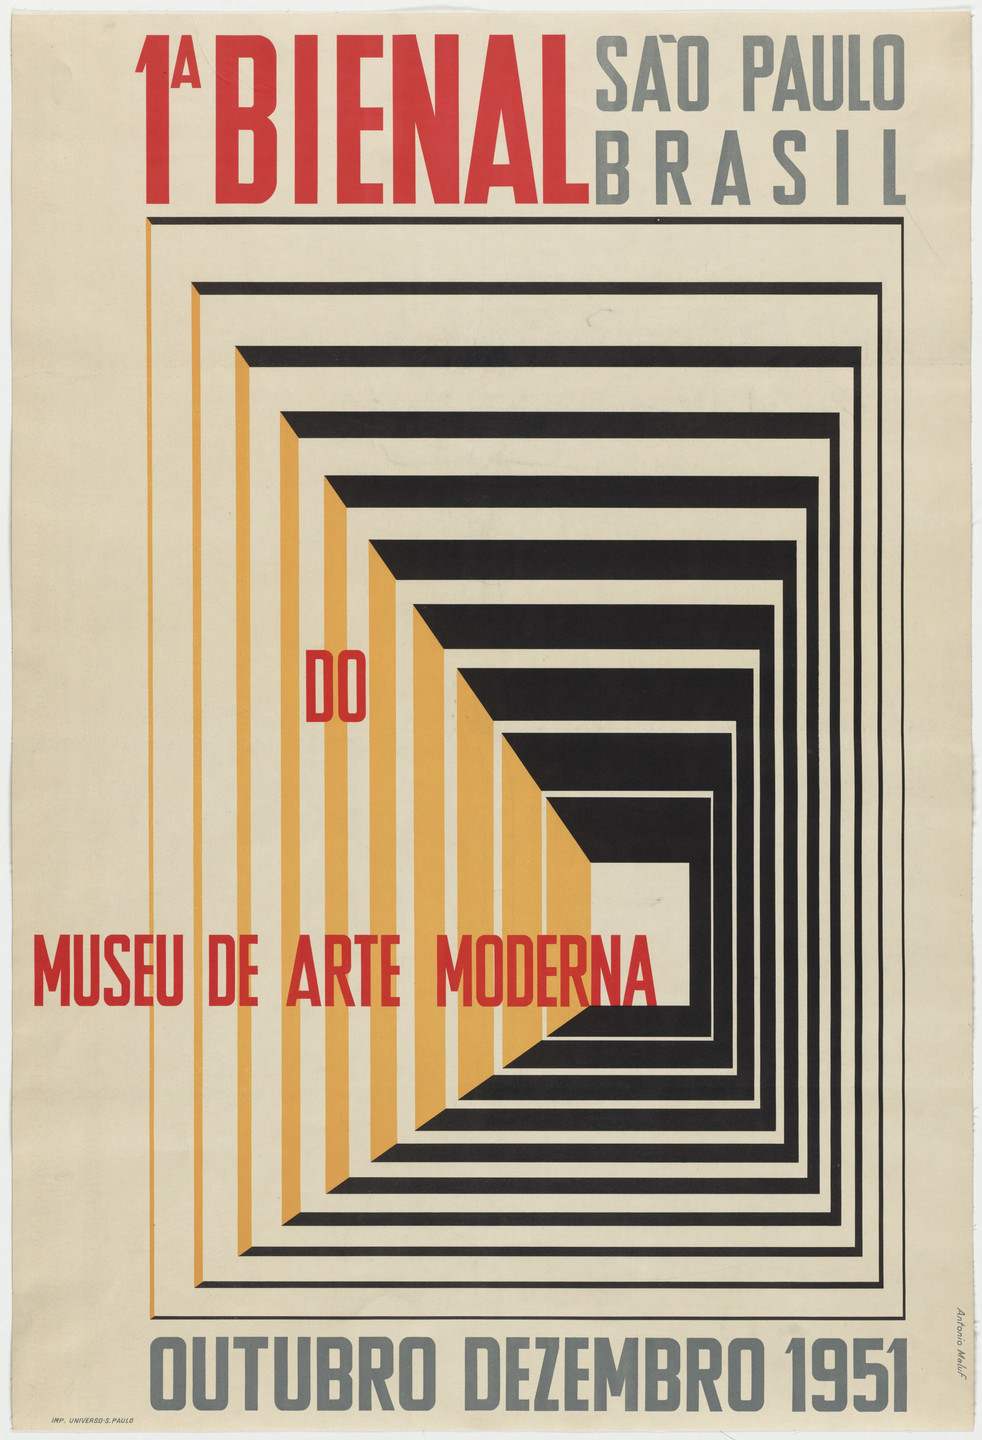 Antonio Maluf. 1a Bienal do Museu de Arte Moderna (Poster for an exhibition in São Paulo, Brazil). 1951